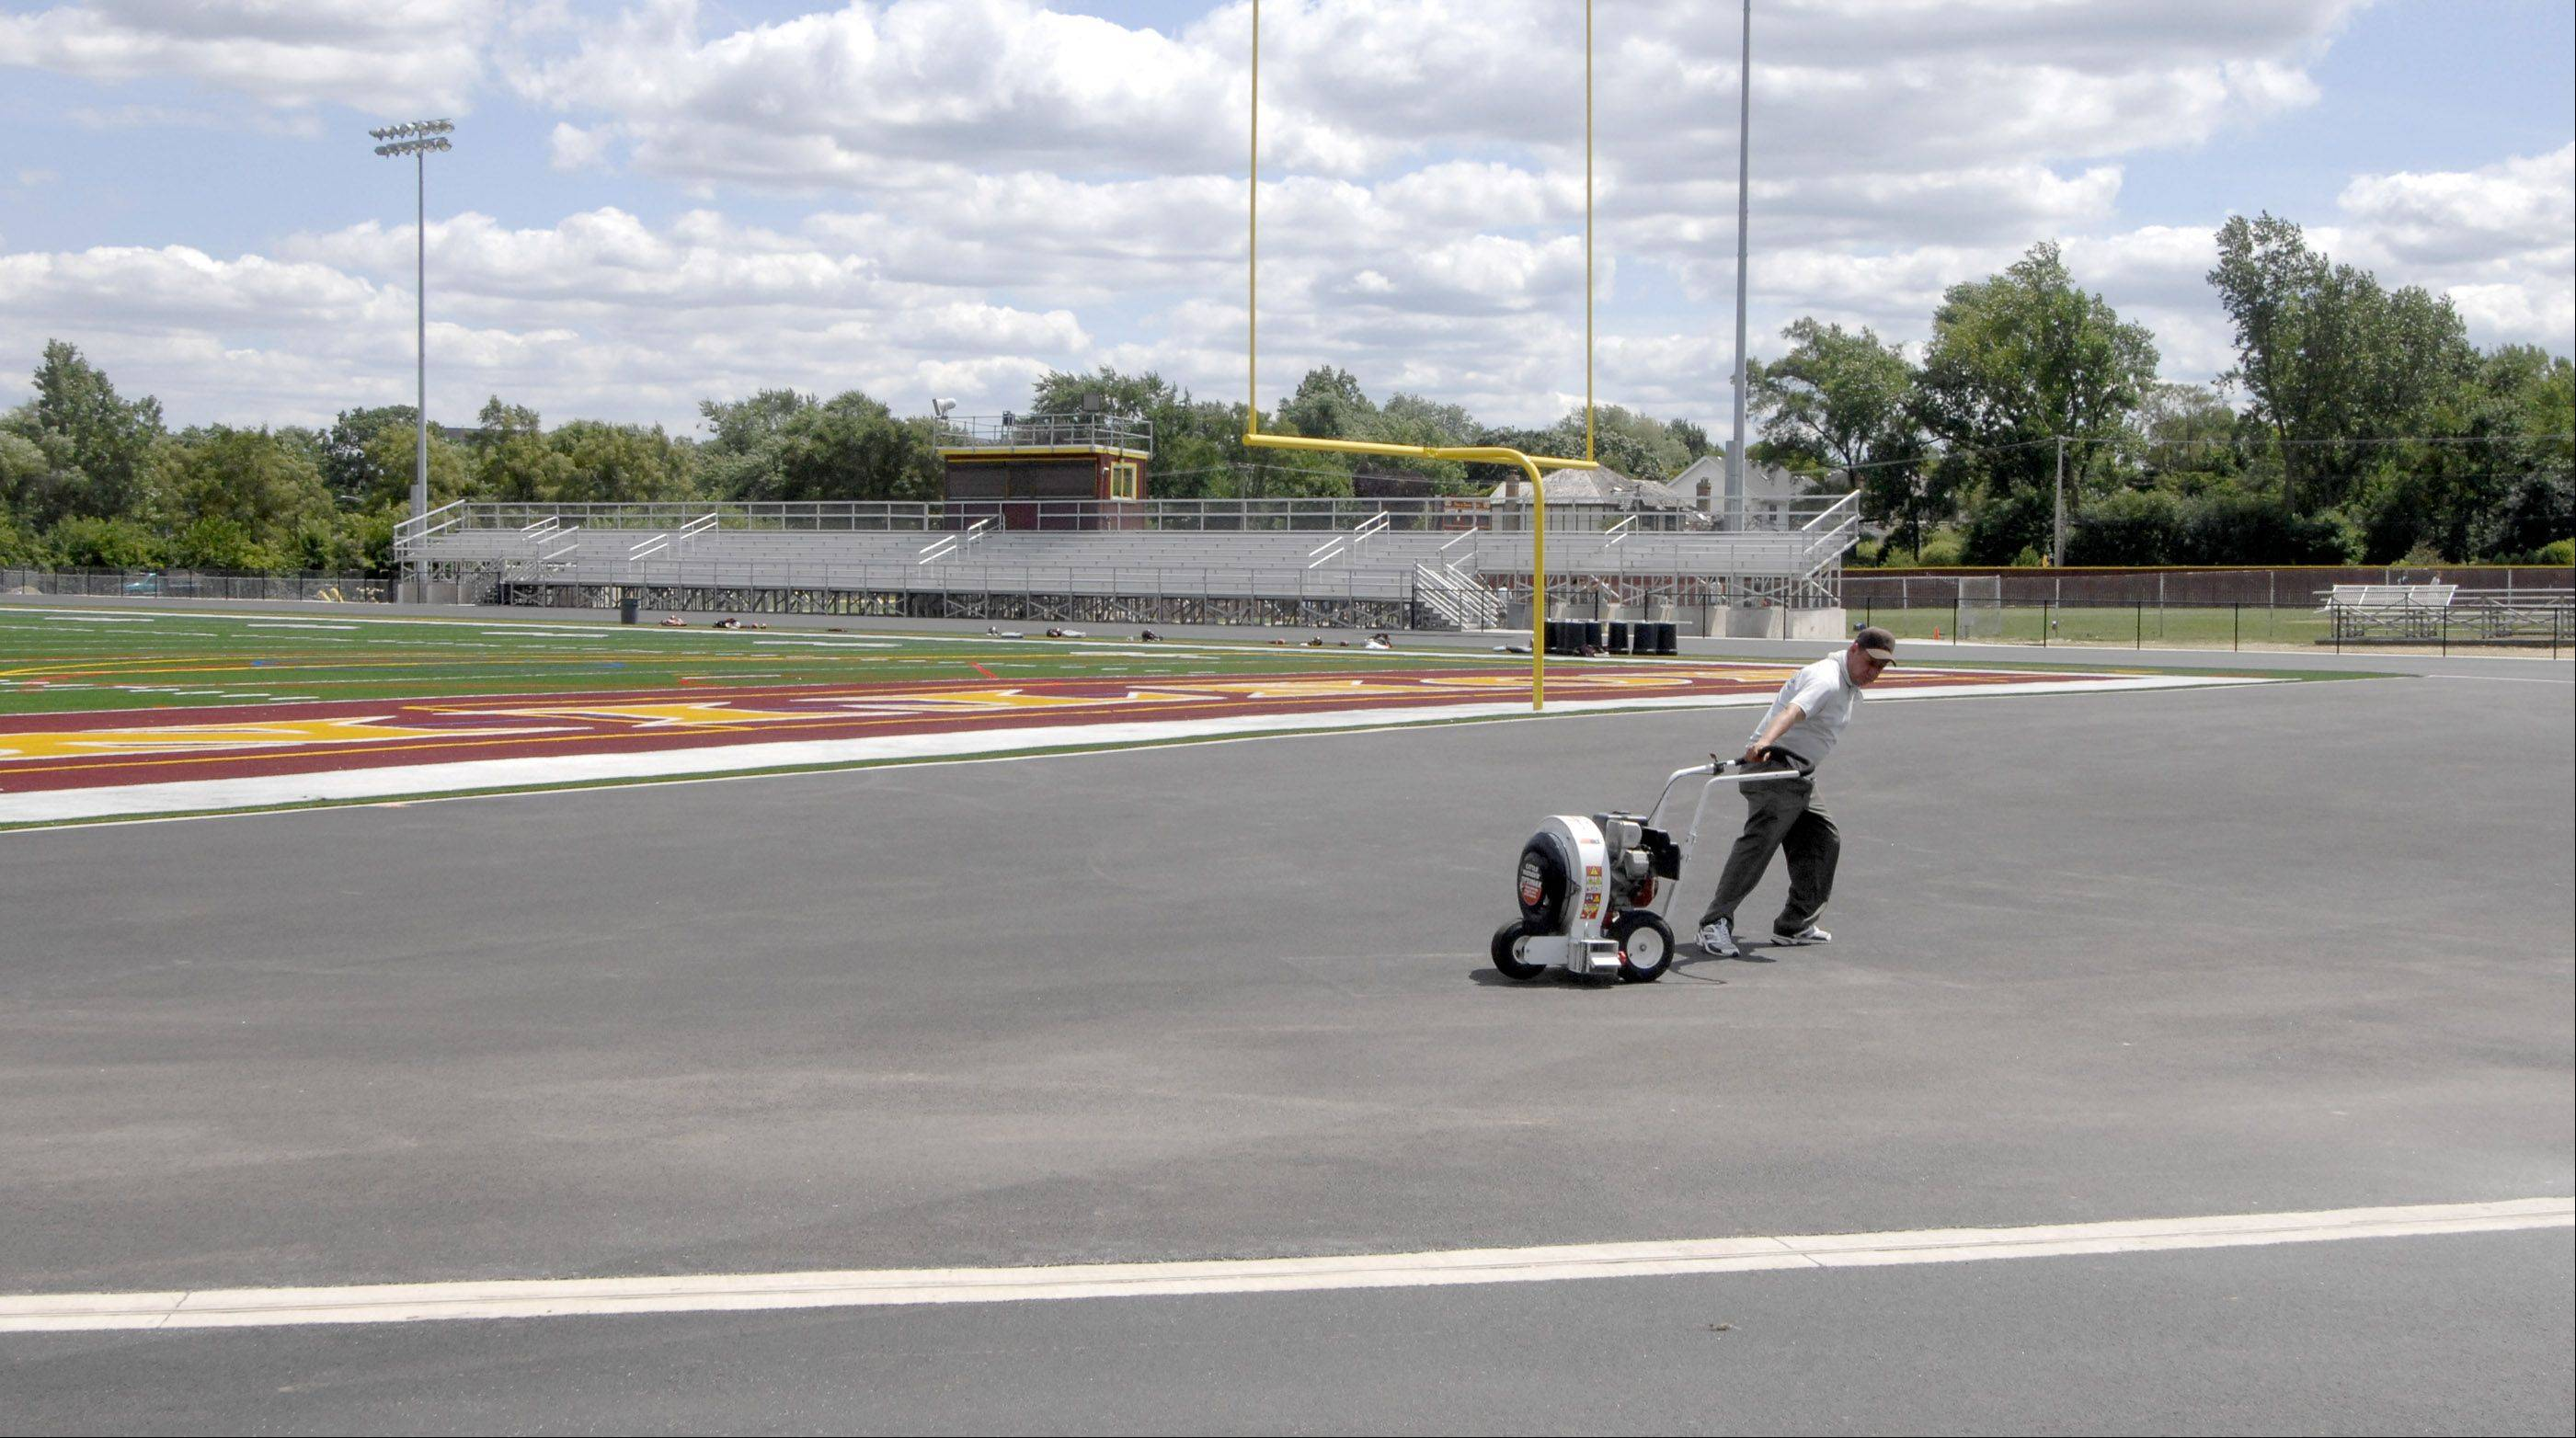 Workers are preparing the track at Lombard's Montini Catholic High School to be coated with a new rubber surface. On Wednesday all of the dust and dirt was removed but the actual coating will begin today.